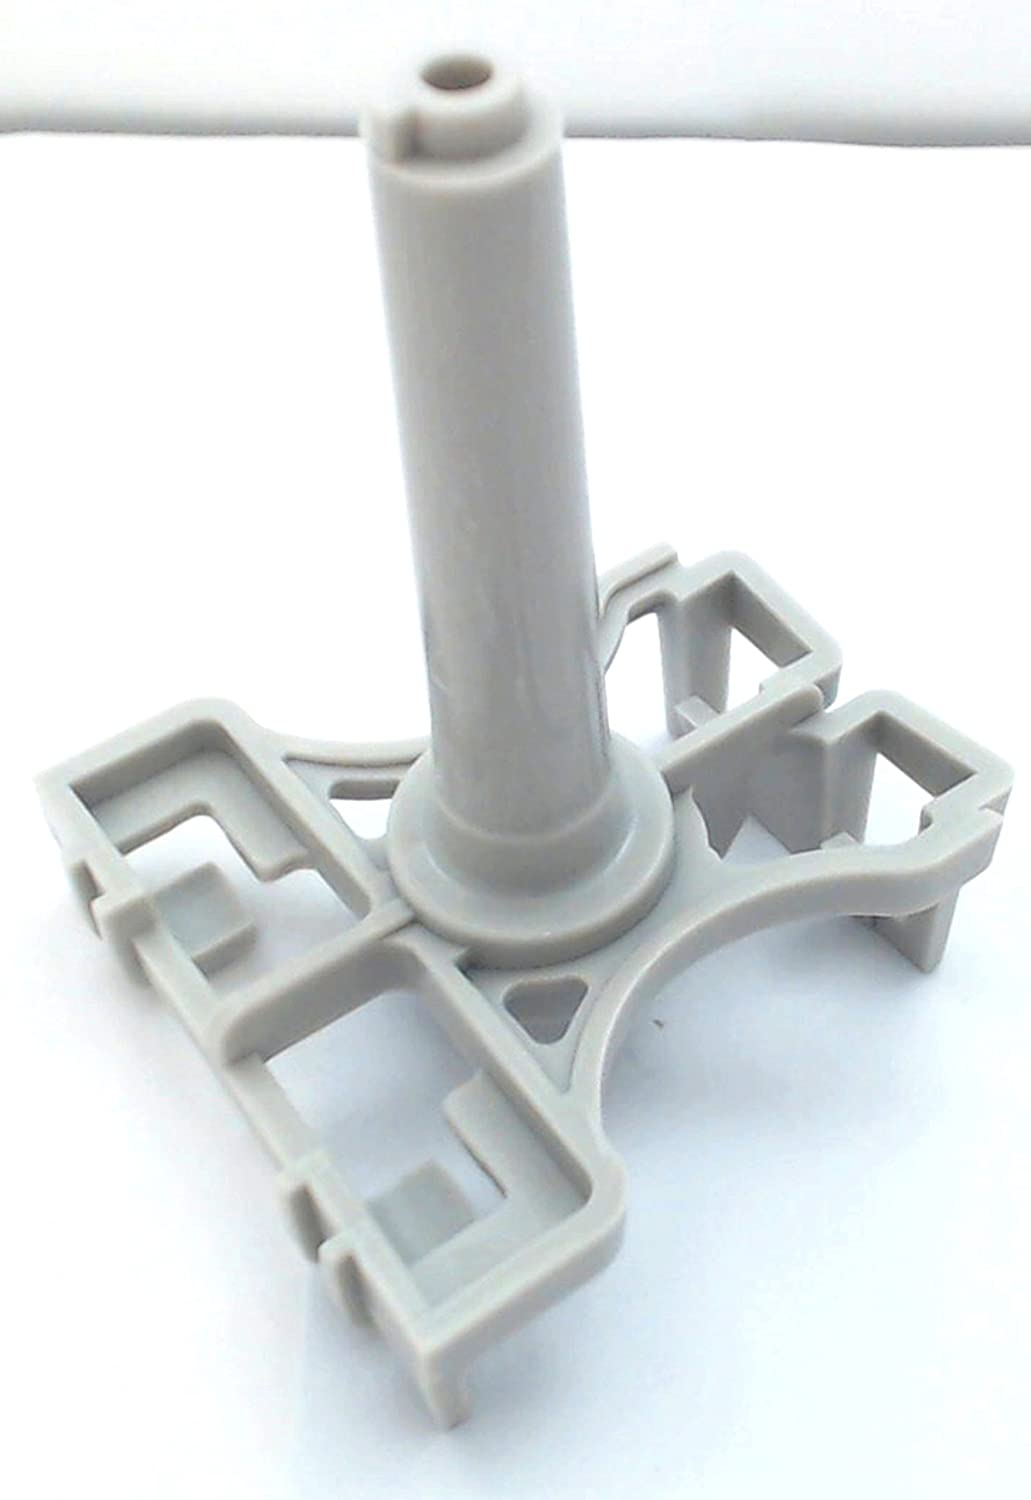 Seneca River Trading Dishwasher Upper Spray Arm Mount for Whirlpool, AP6013024, PS11746245, 8539324